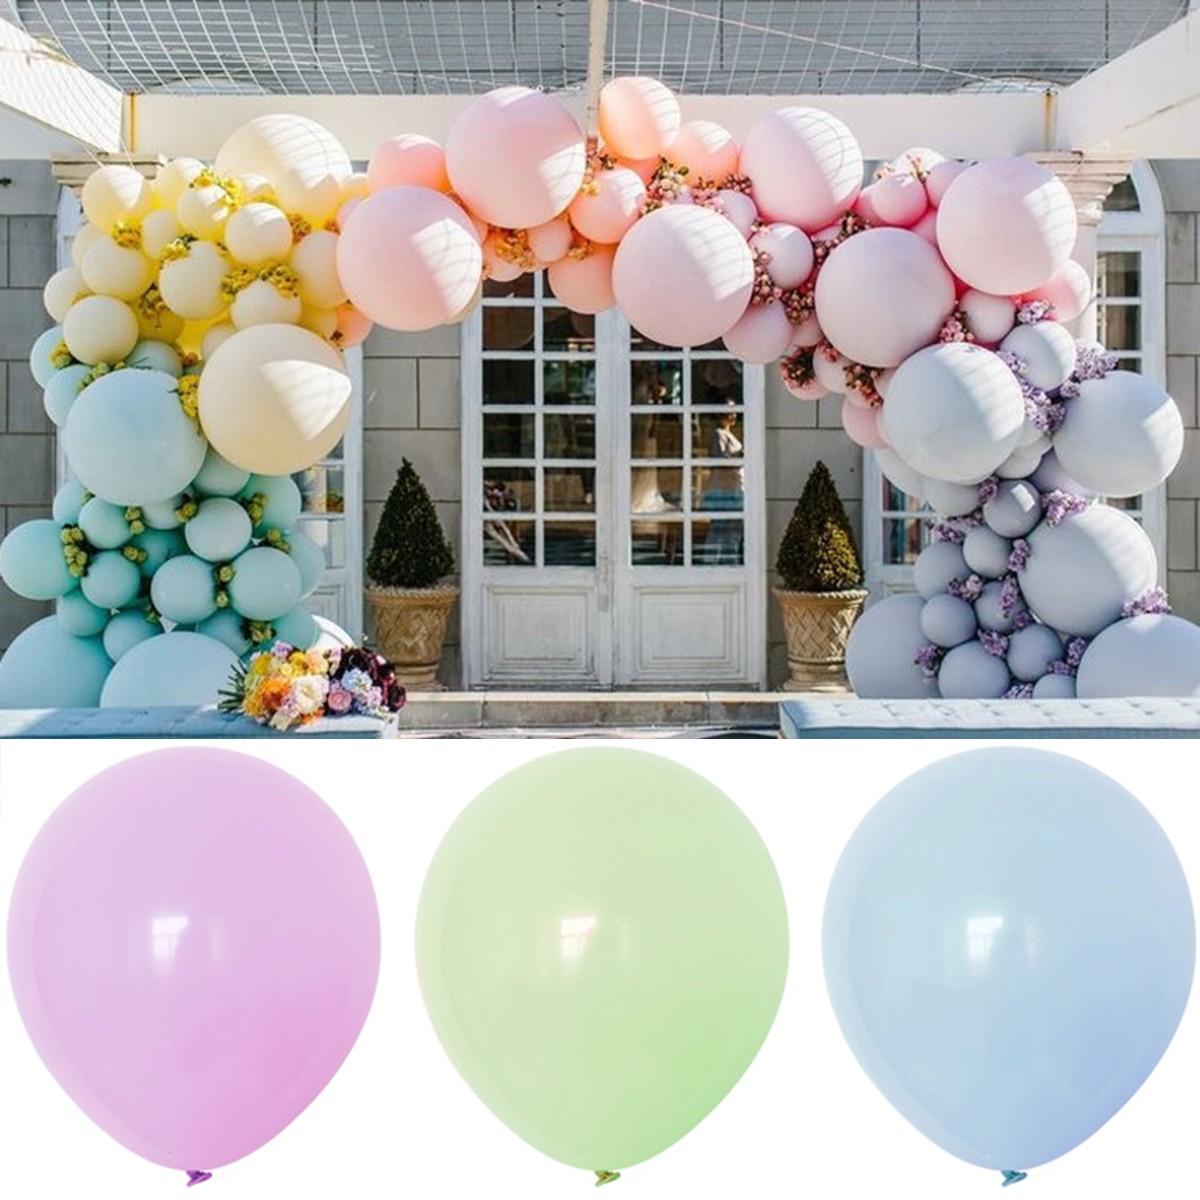 100pcs 10inch Mixed Round Balloons Macaron Candy Colored Latex Balloon Birthday Wedding Engagement Festival Family Party Decor